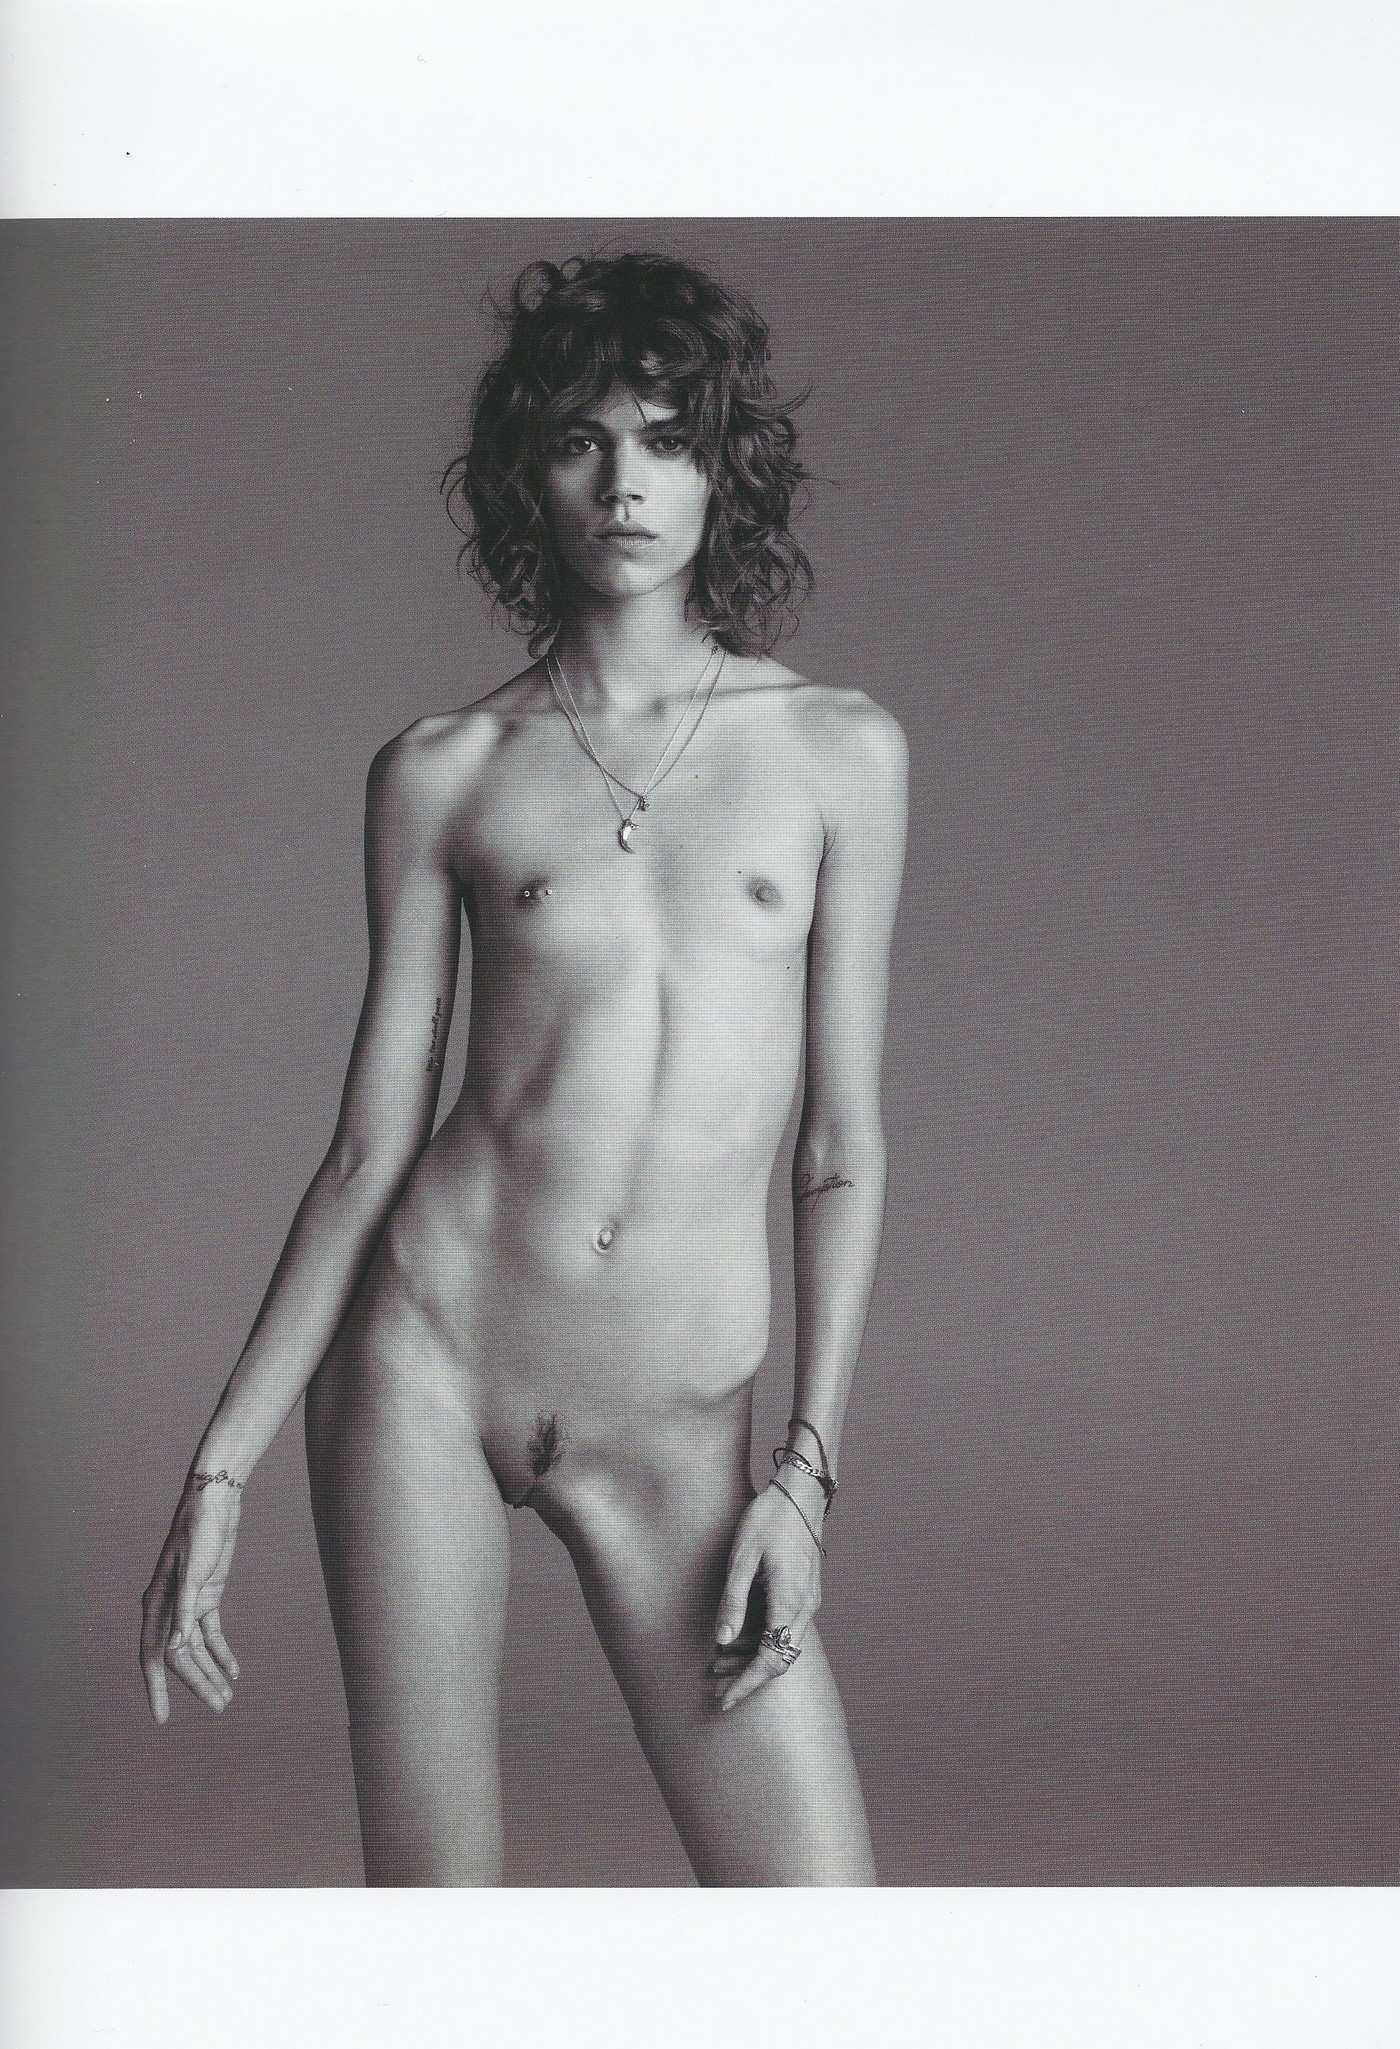 fashion non Magazine models young nude